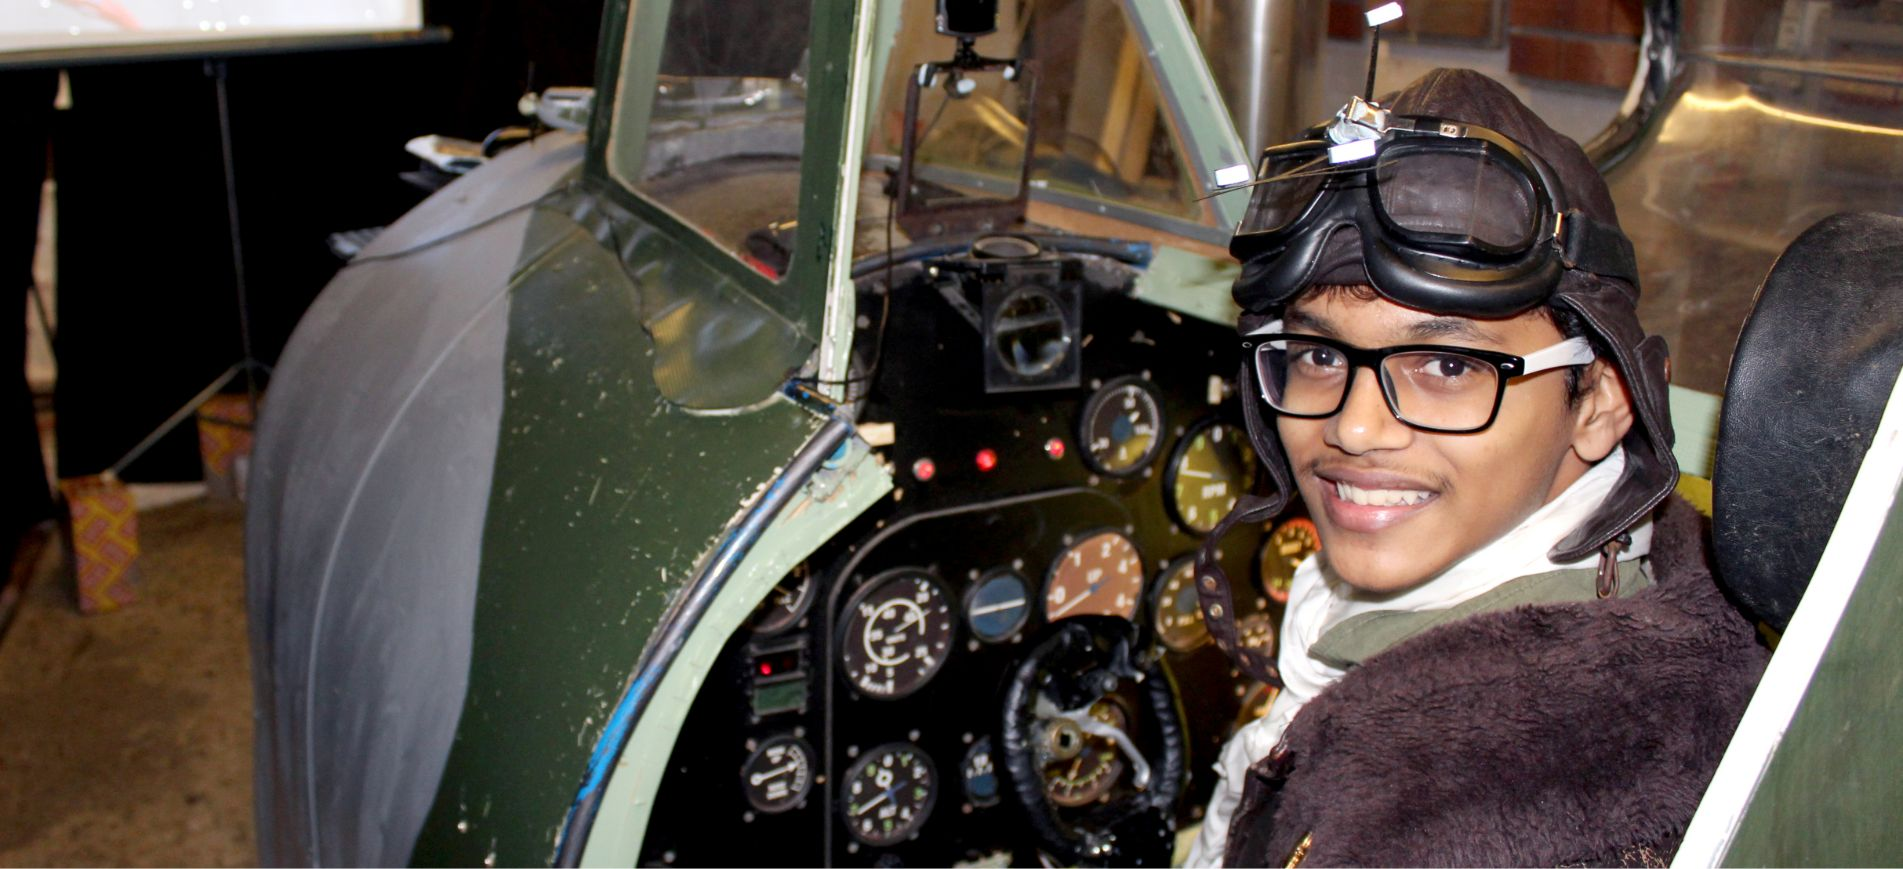 A young student at Brockwood Park School inside a mockup airplane